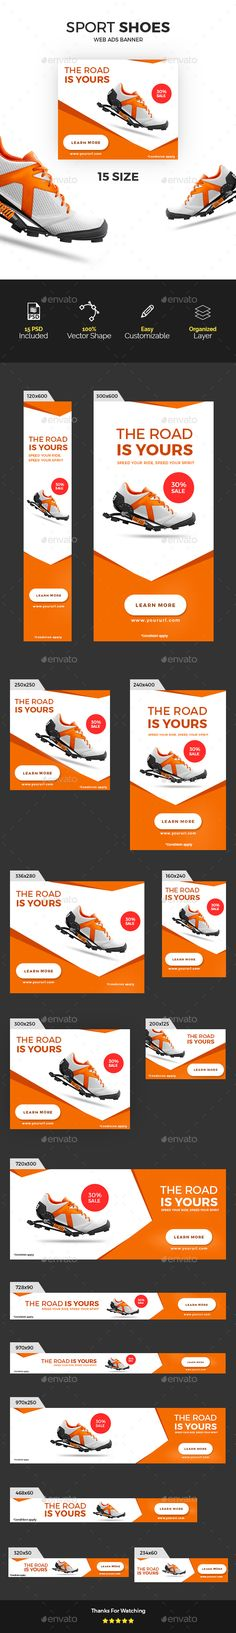 Sports Ads Banners Template PSD. Download here: http://graphicriver.net/item/sports-ads-banners/15963053?ref=ksioks